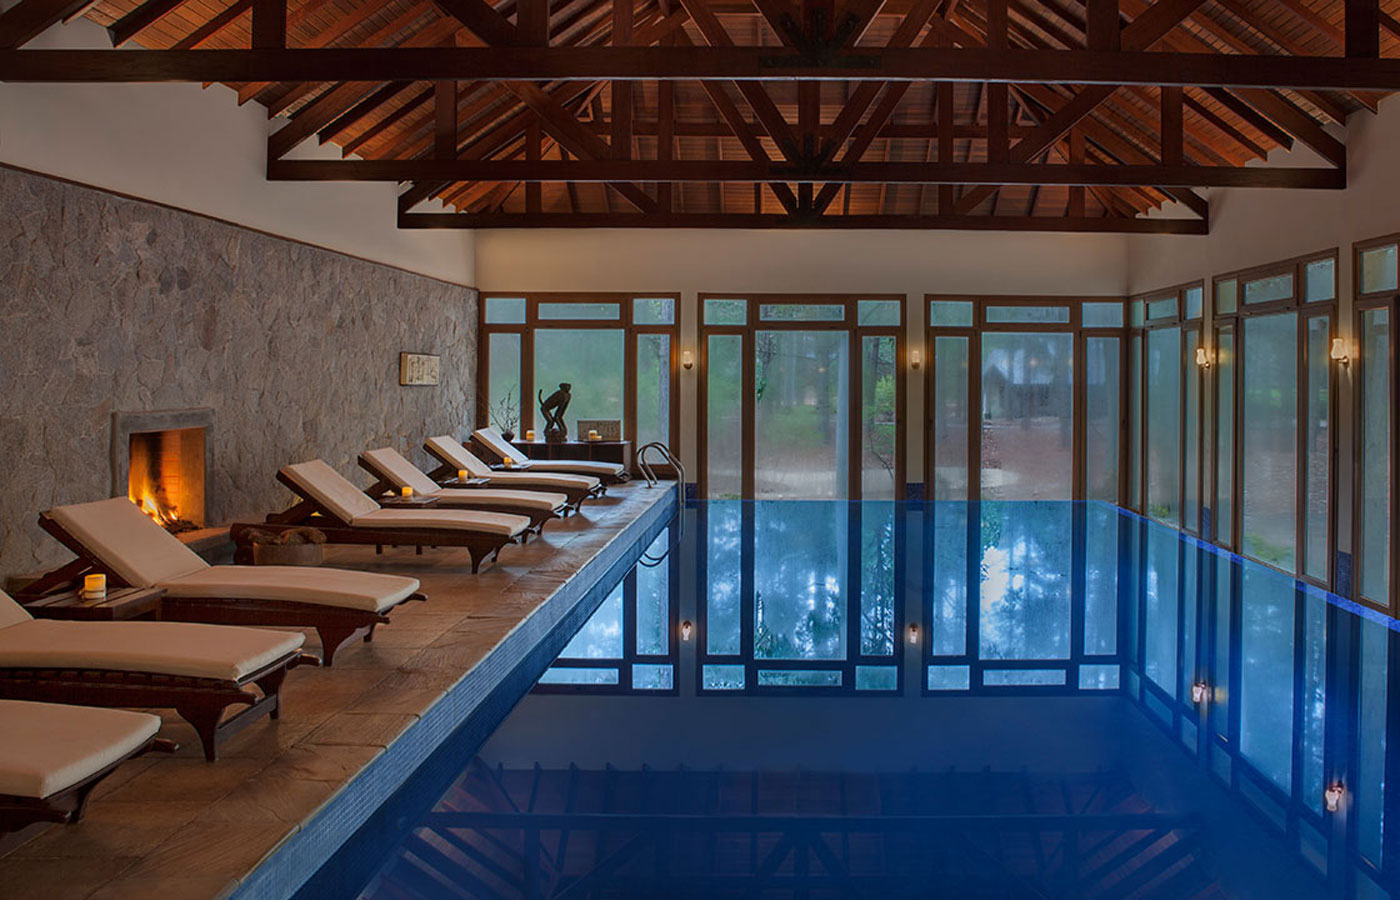 The gorgeous pool at the Hyatt Carmelo Resort & Spa in Uruguay